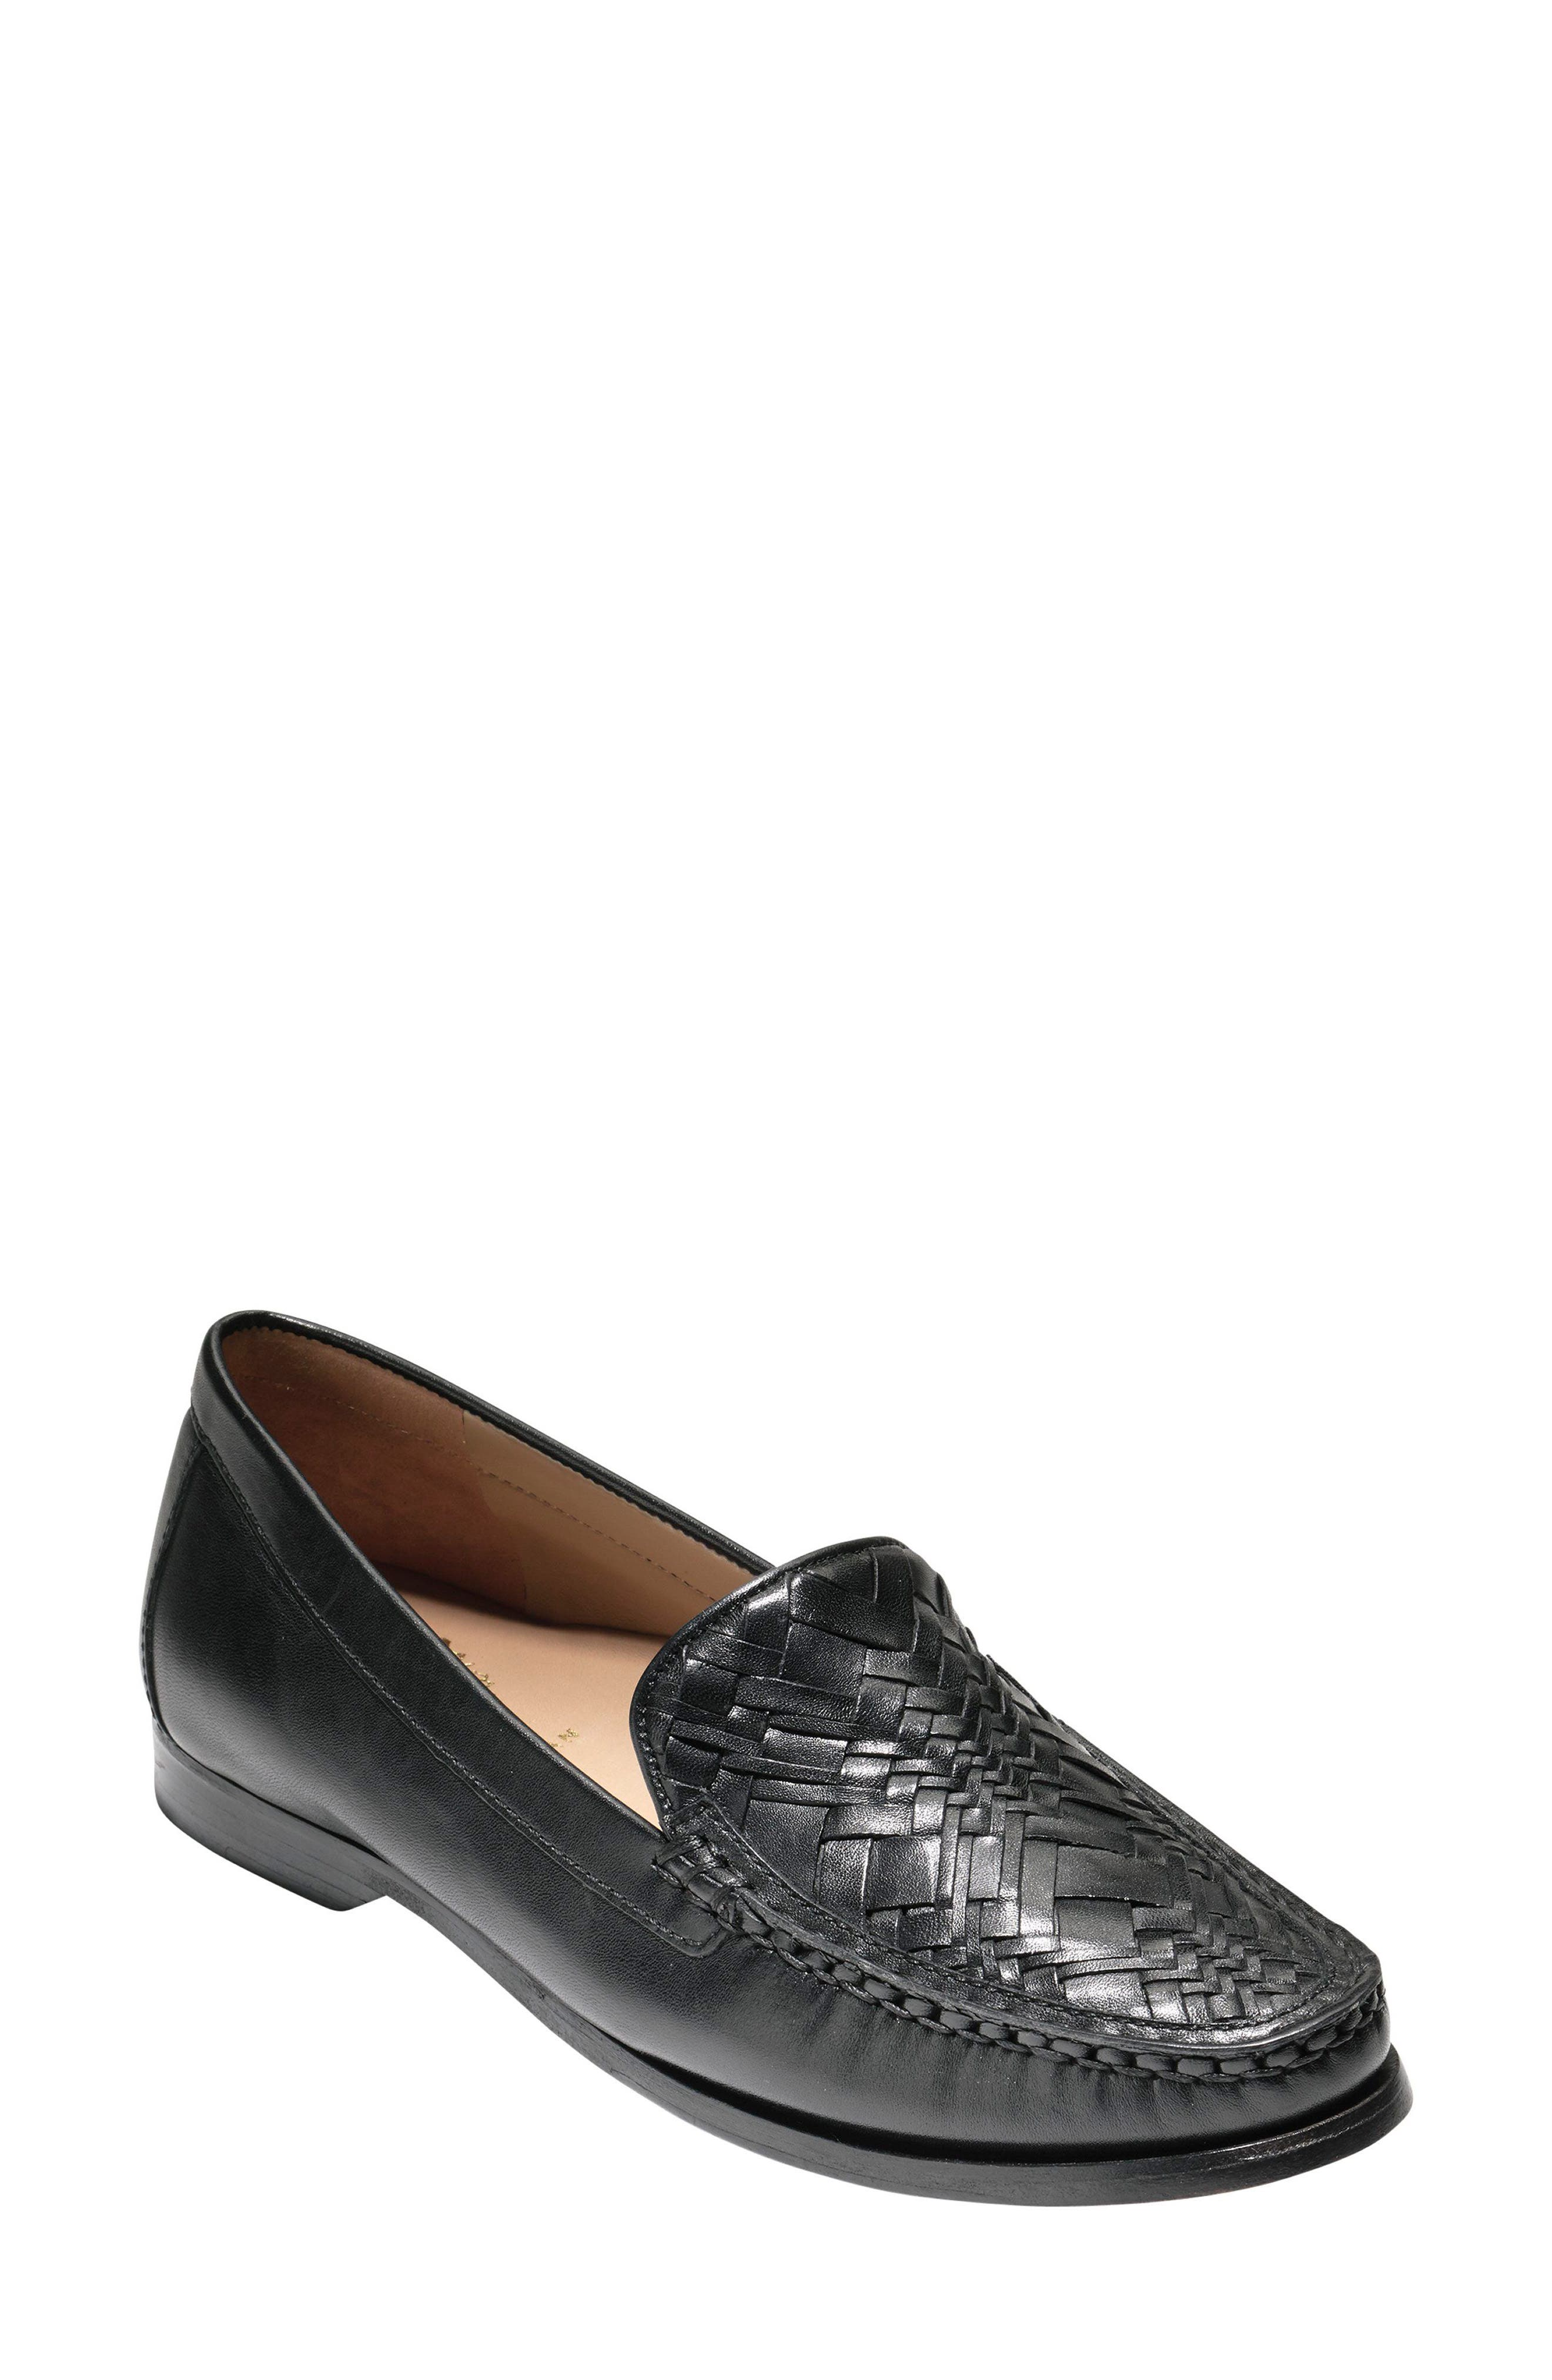 Pinch Genevieve Loafer,                         Main,                         color, 001